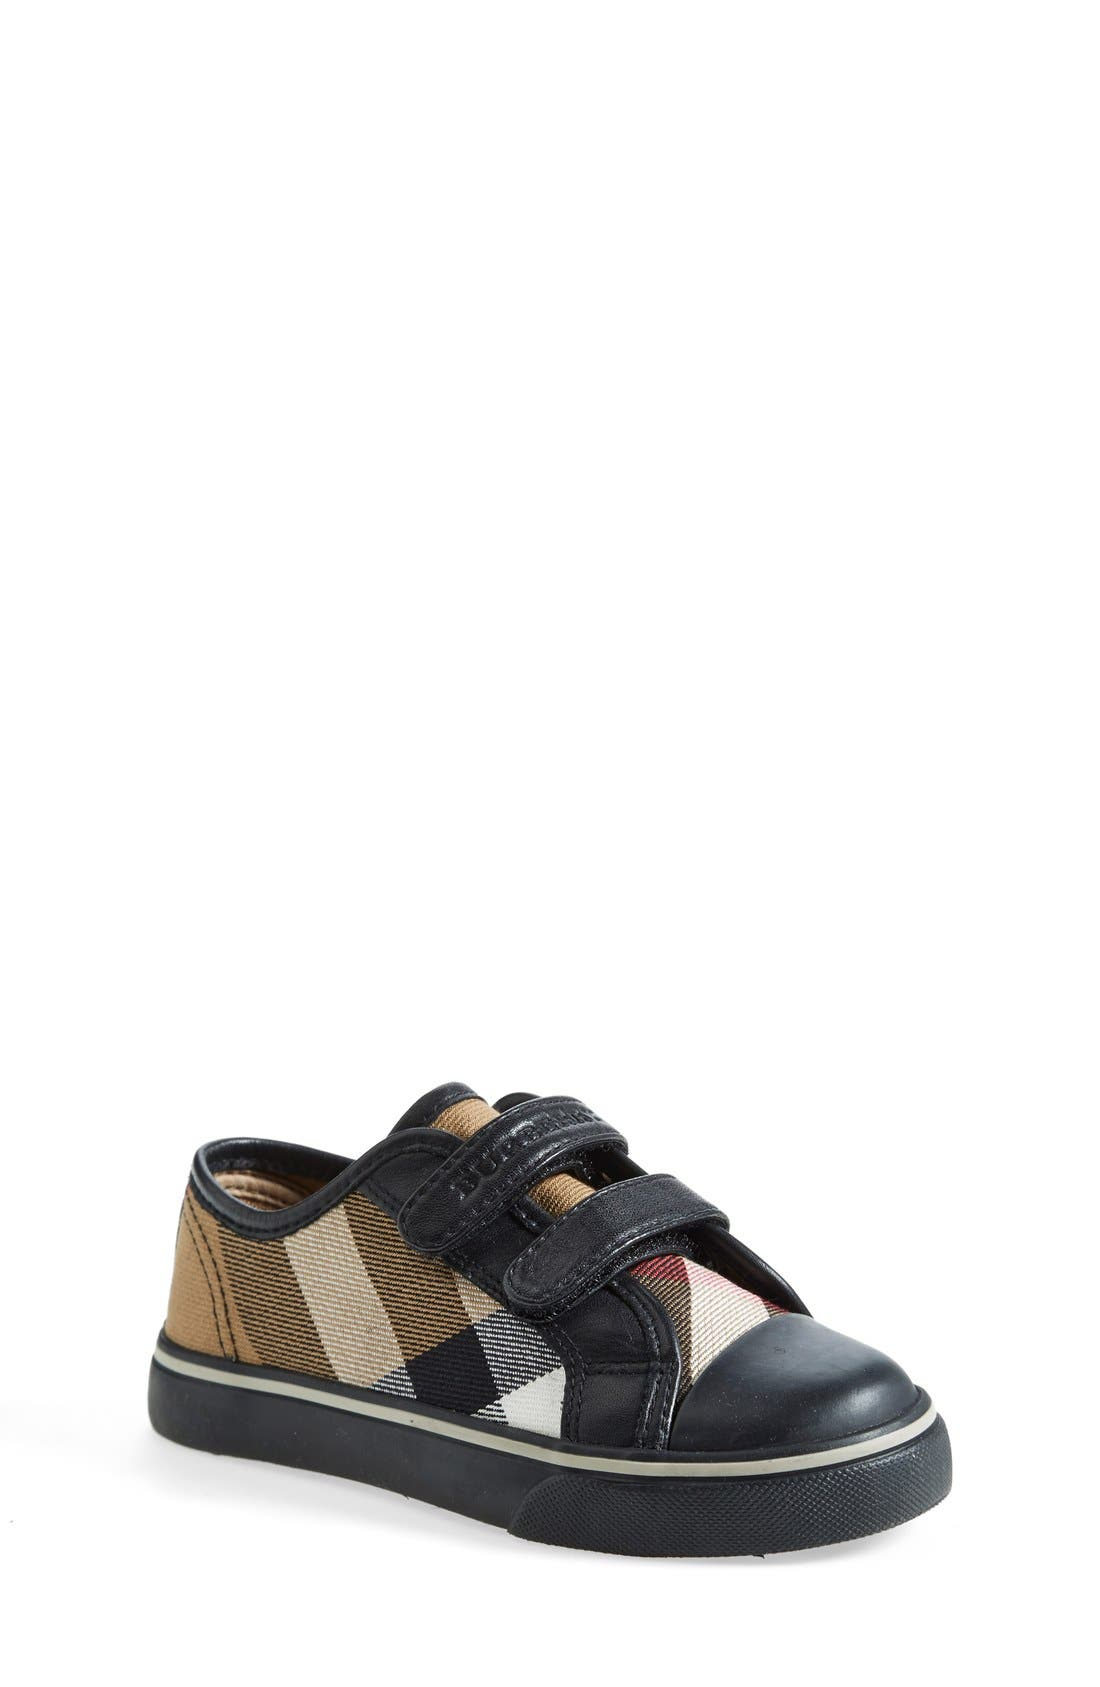 Alternate Image 1 Selected - Burberry 'Pete' Sneaker (Baby, Walker, Toddler &  Little Kid)